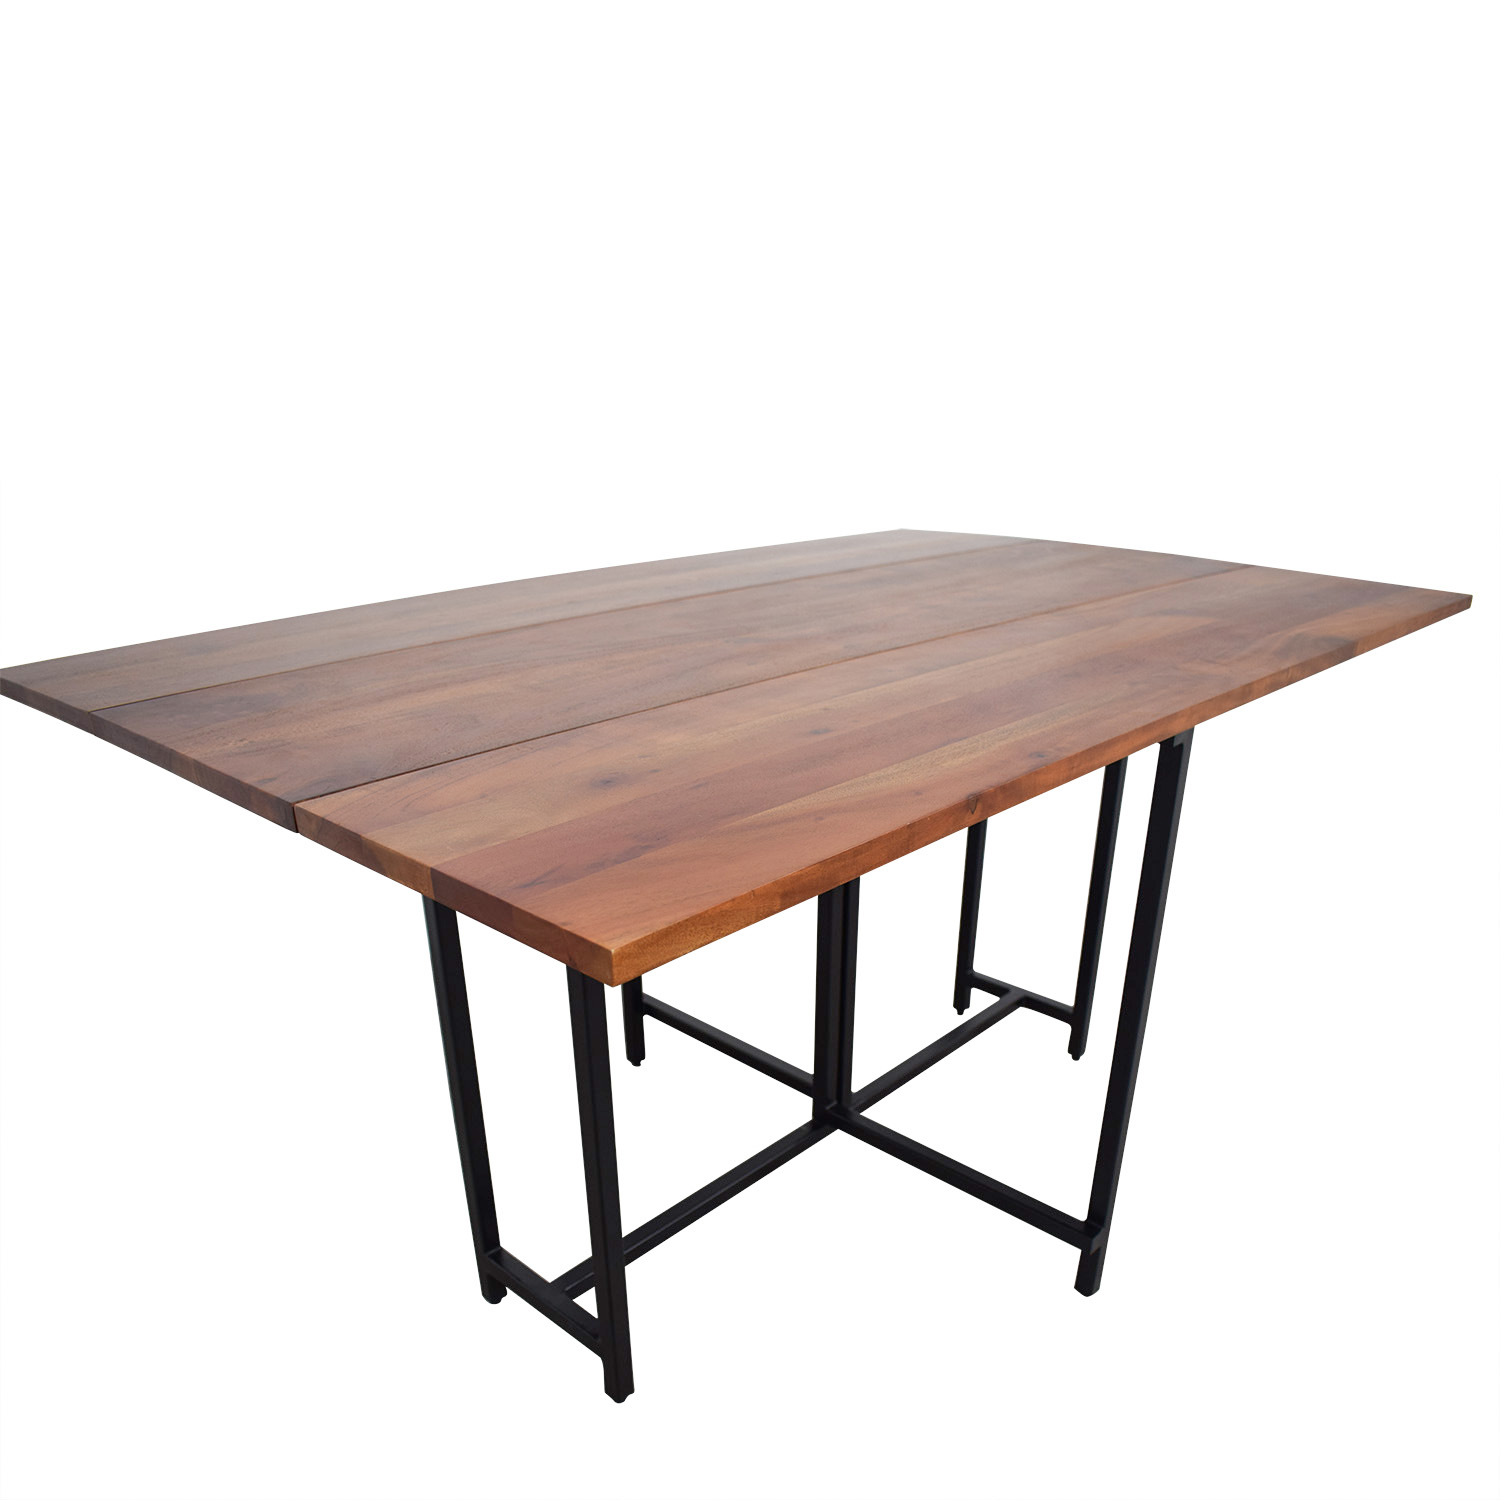 buy Crate & Barrel Origami Extendable Leaf Table Crate & Barrel Tables